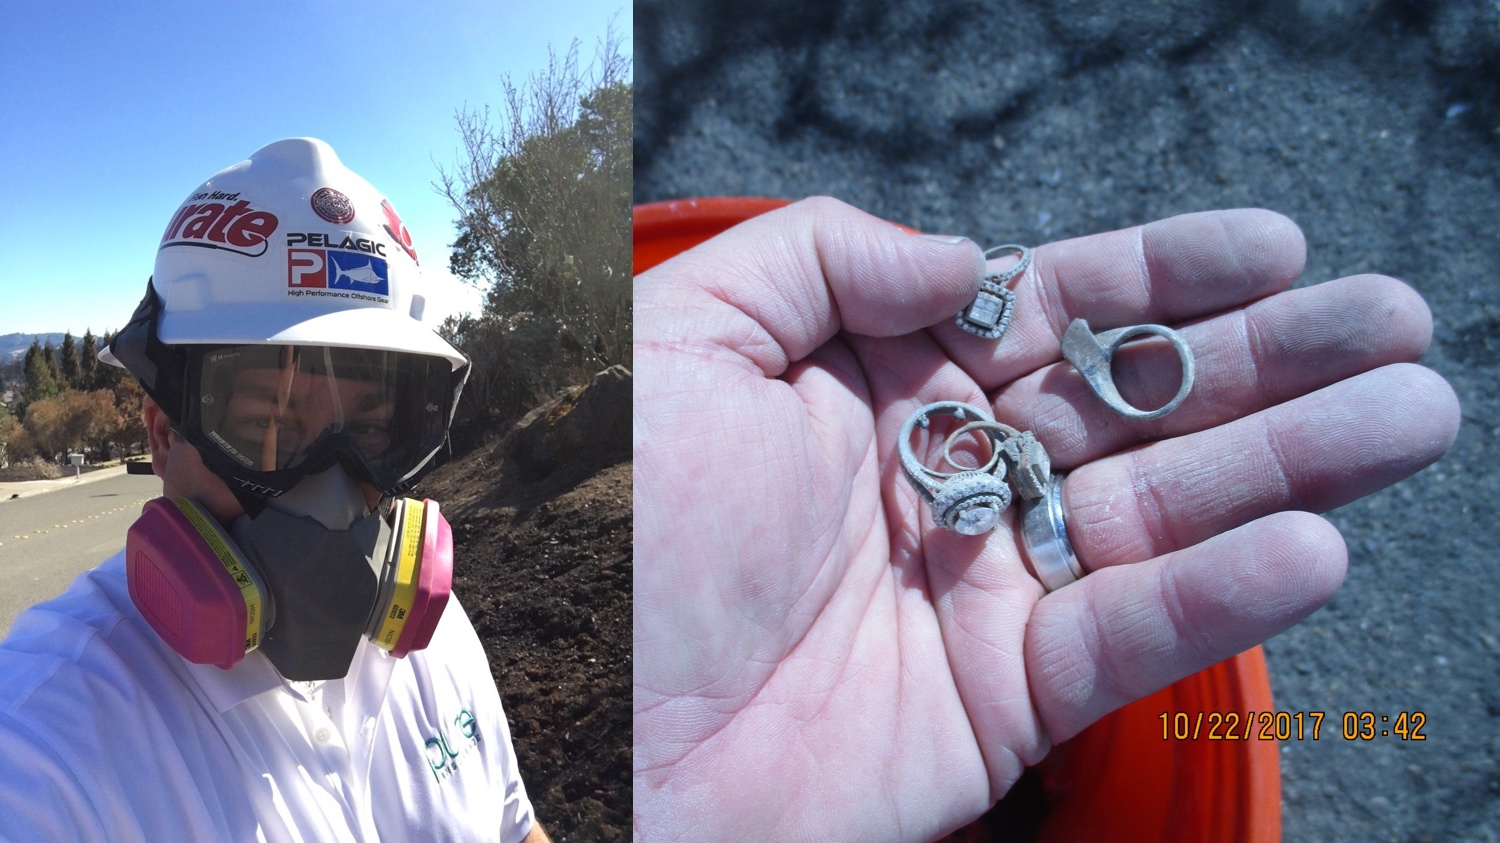 [Left] PURE Claims Adjuster Andy Brotherton at the property of PURE member Nina Mehta in Santa Rosa, California. [Right] PURE Claims Adjuster Andy Brotherton with several rings of PURE Member Nina Mehta's jewelry recovered at her property in Santa Rosa, California.